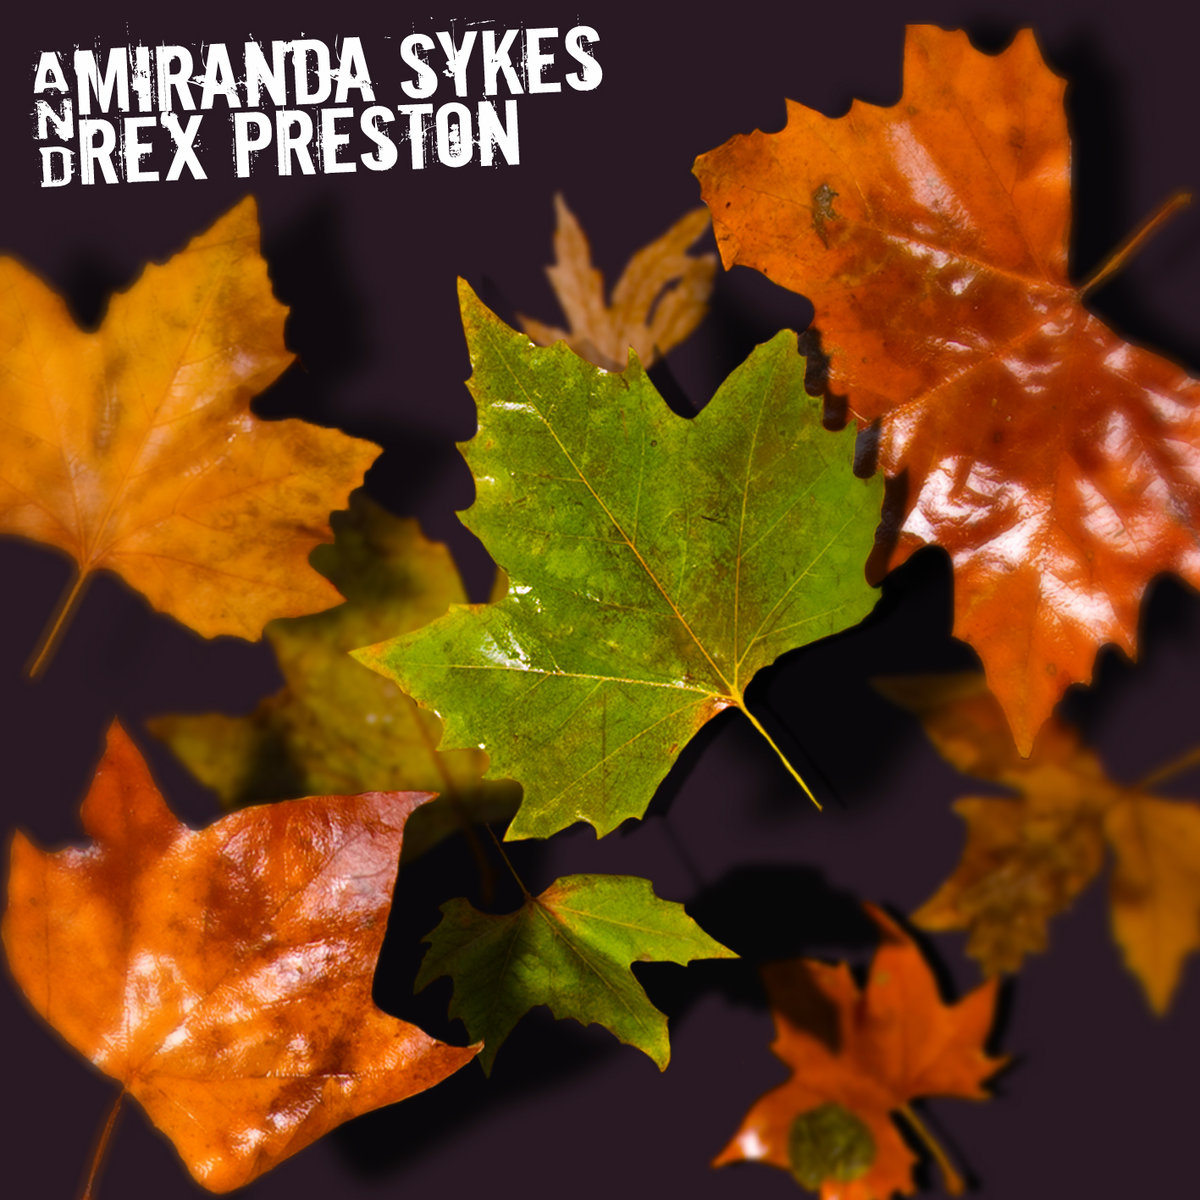 Artist:  Miranda Sykes and Rex Preston   Title:  Miranda Sykes and Rex Preston   Label:  Hands On Music   Credit:  Mastering   Year:  2012